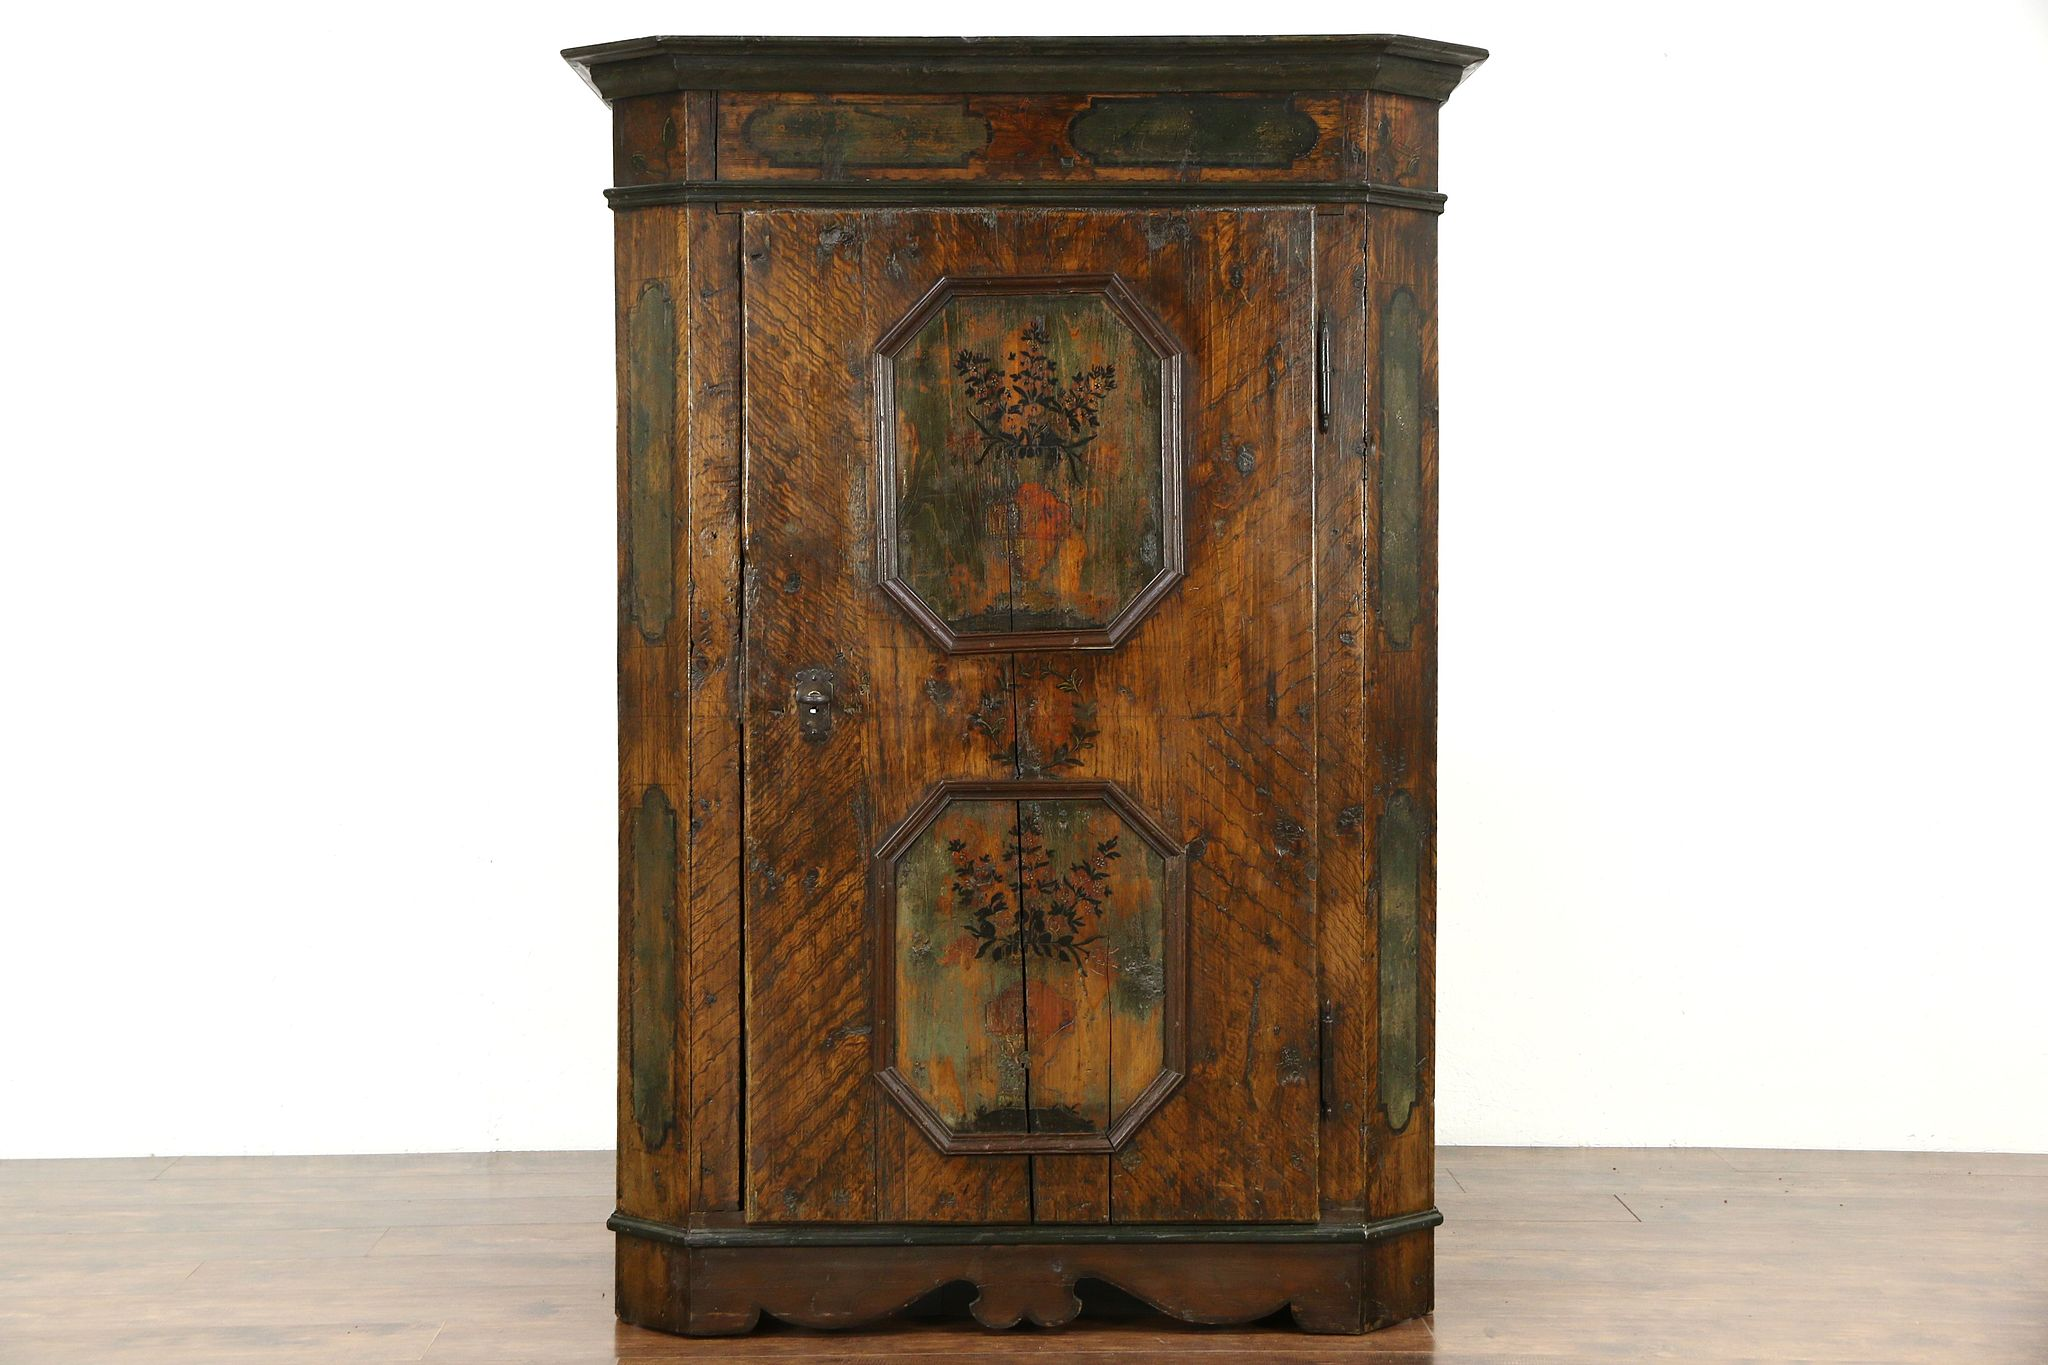 Schrank German Hand Painted 1700s Antique Folk Art Dowry Armoire Or Cabinet